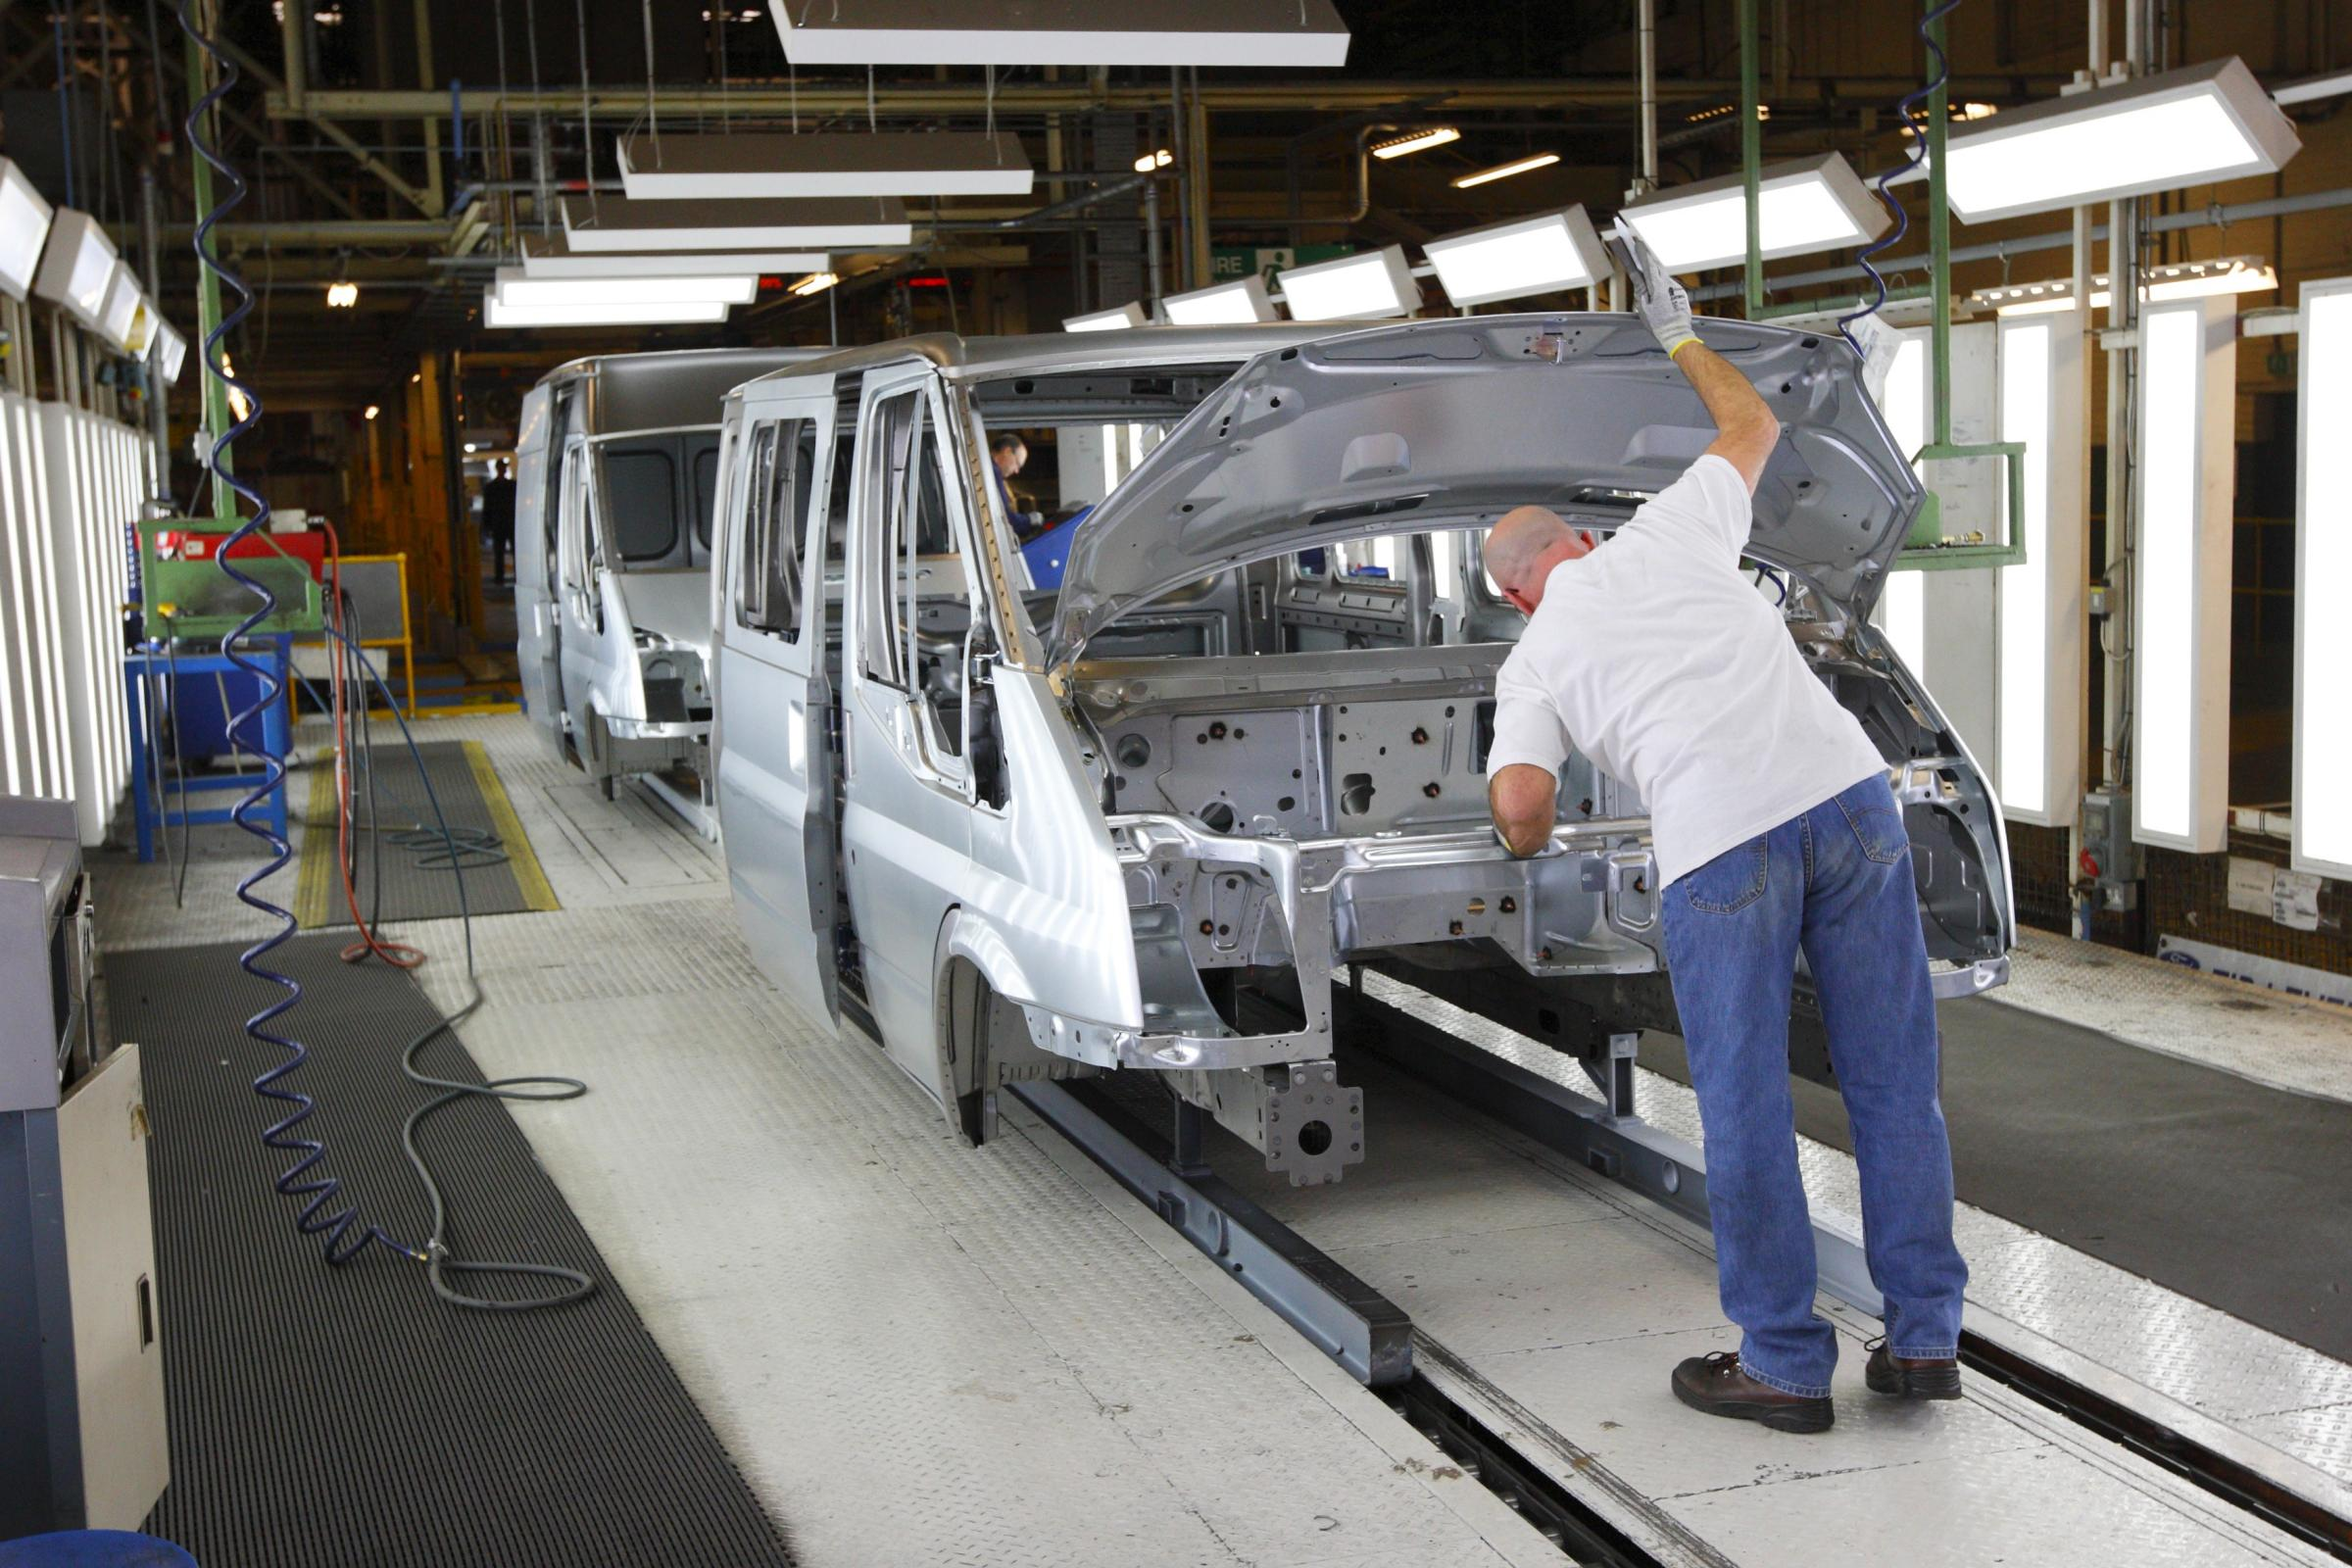 Ford workers check the bodywork of Transit vans